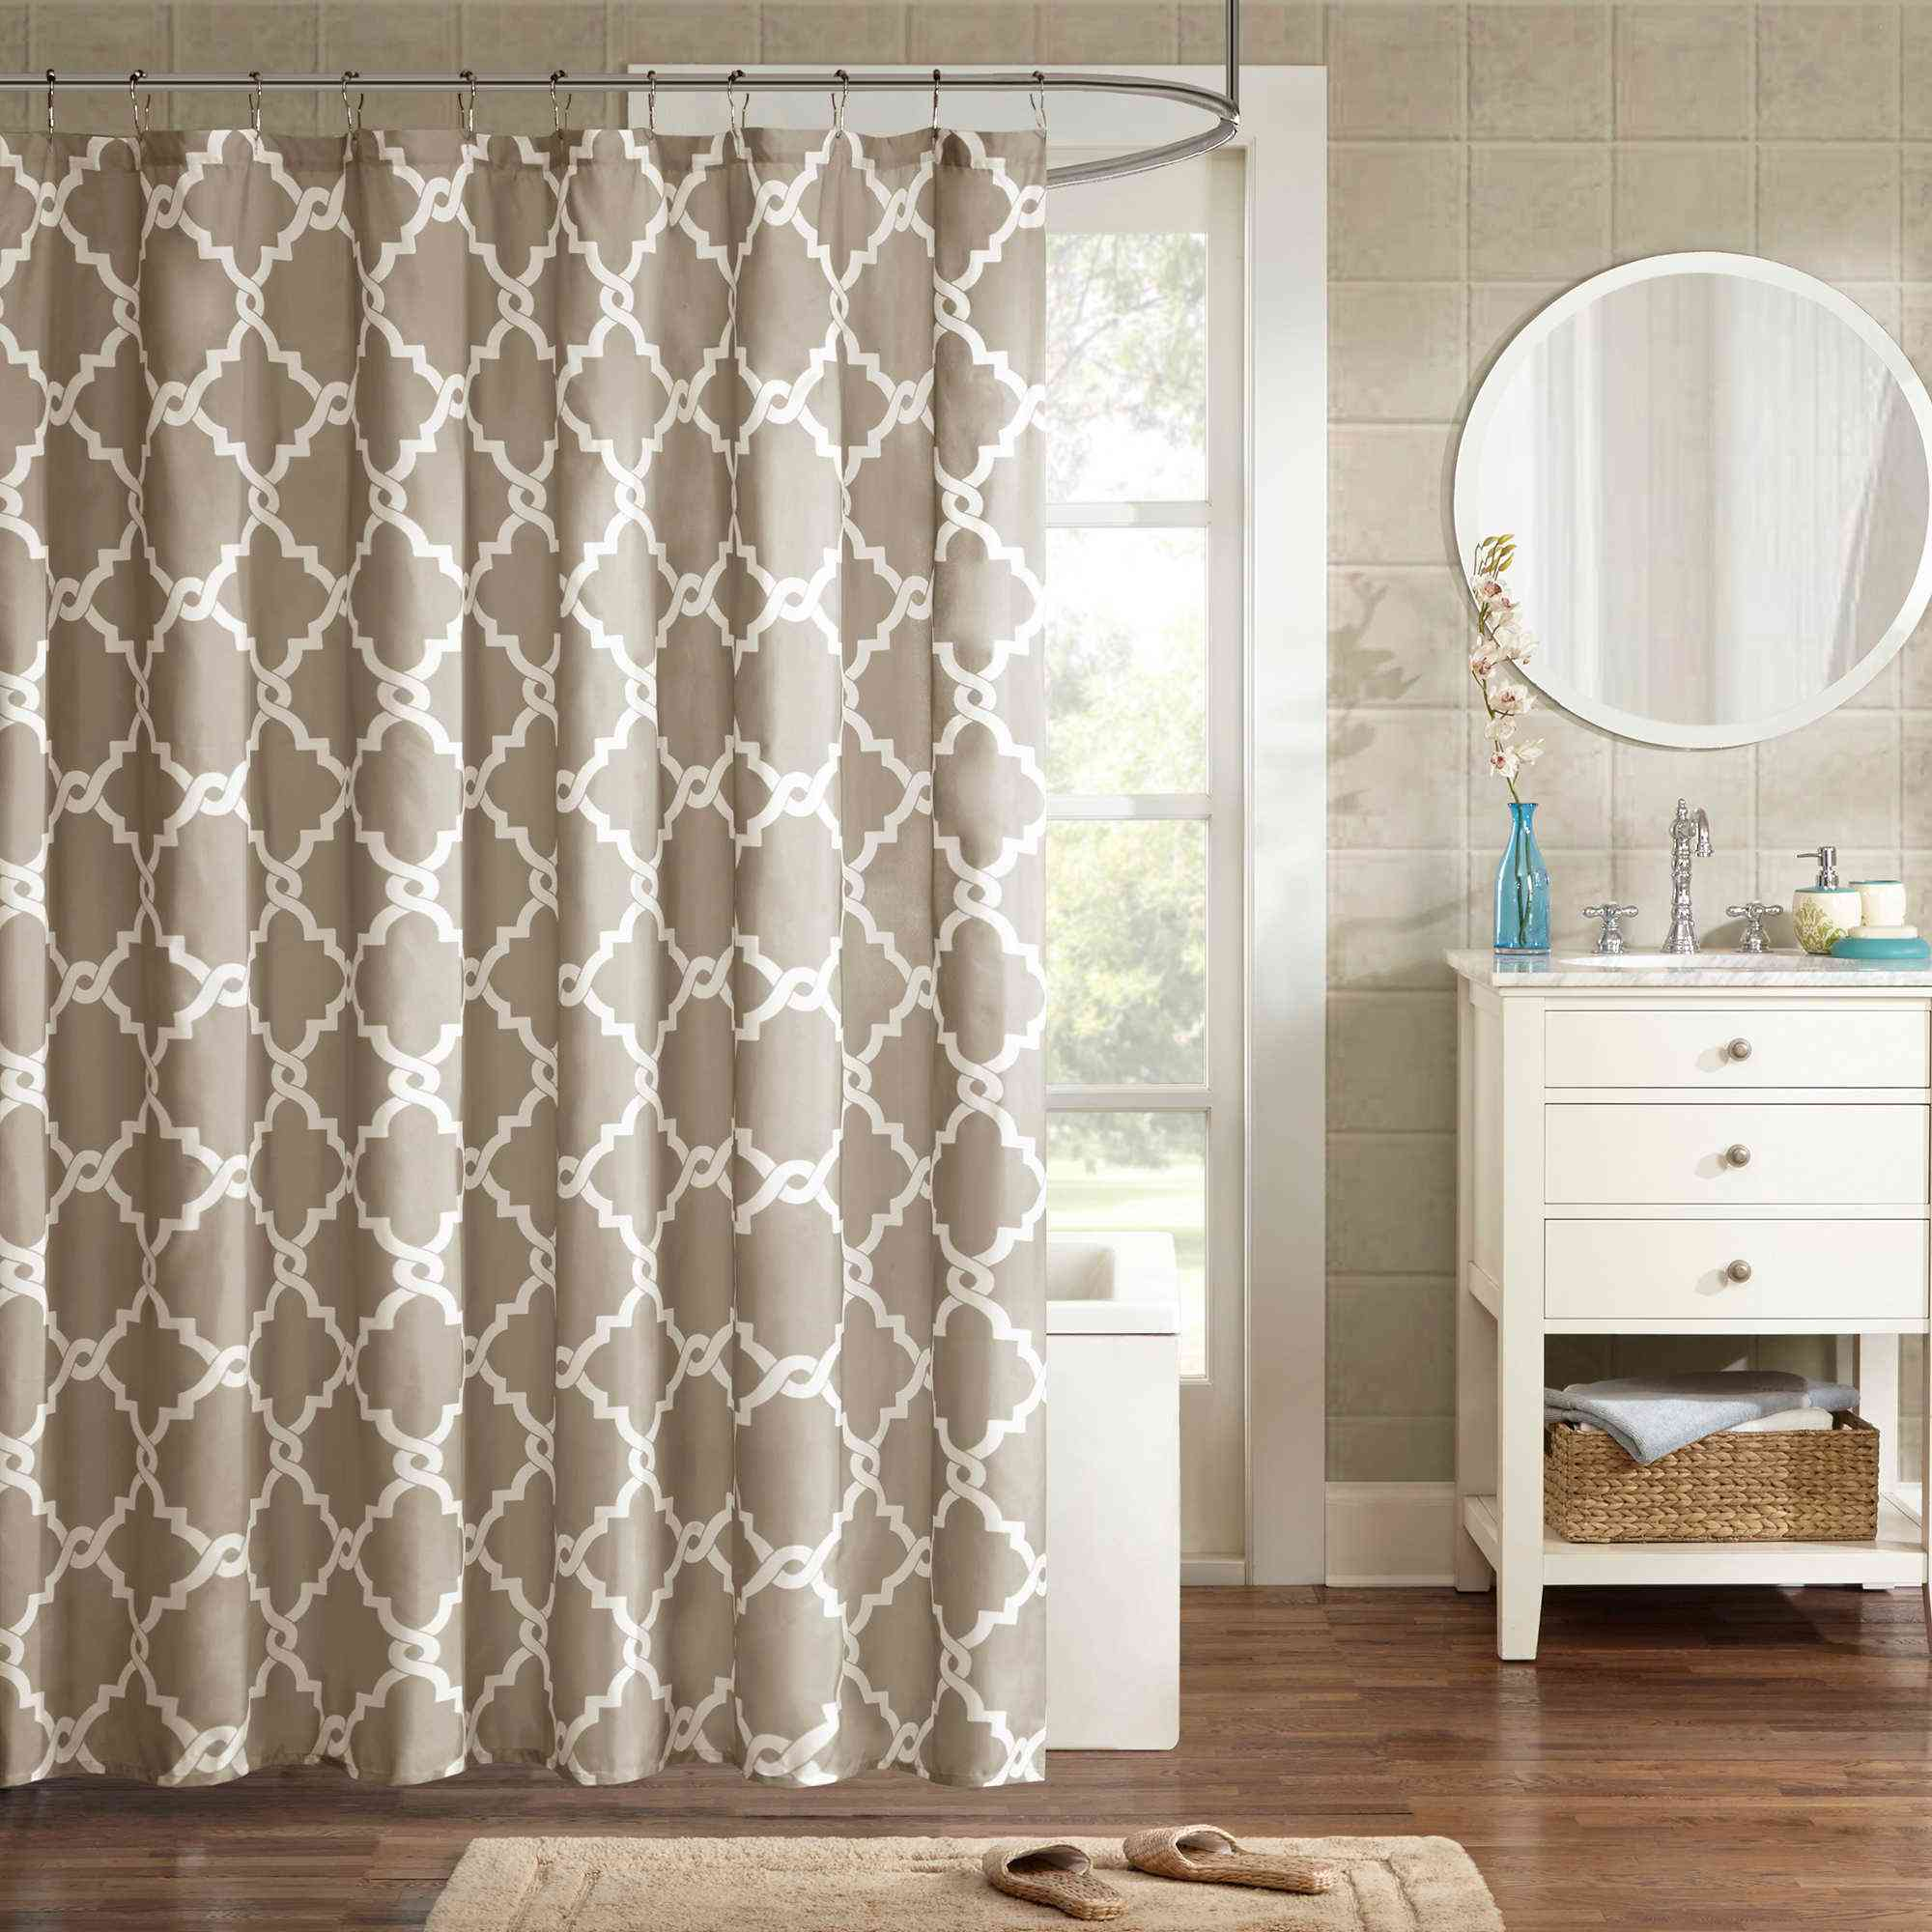 The 8 Best Shower Curtains Of 2021